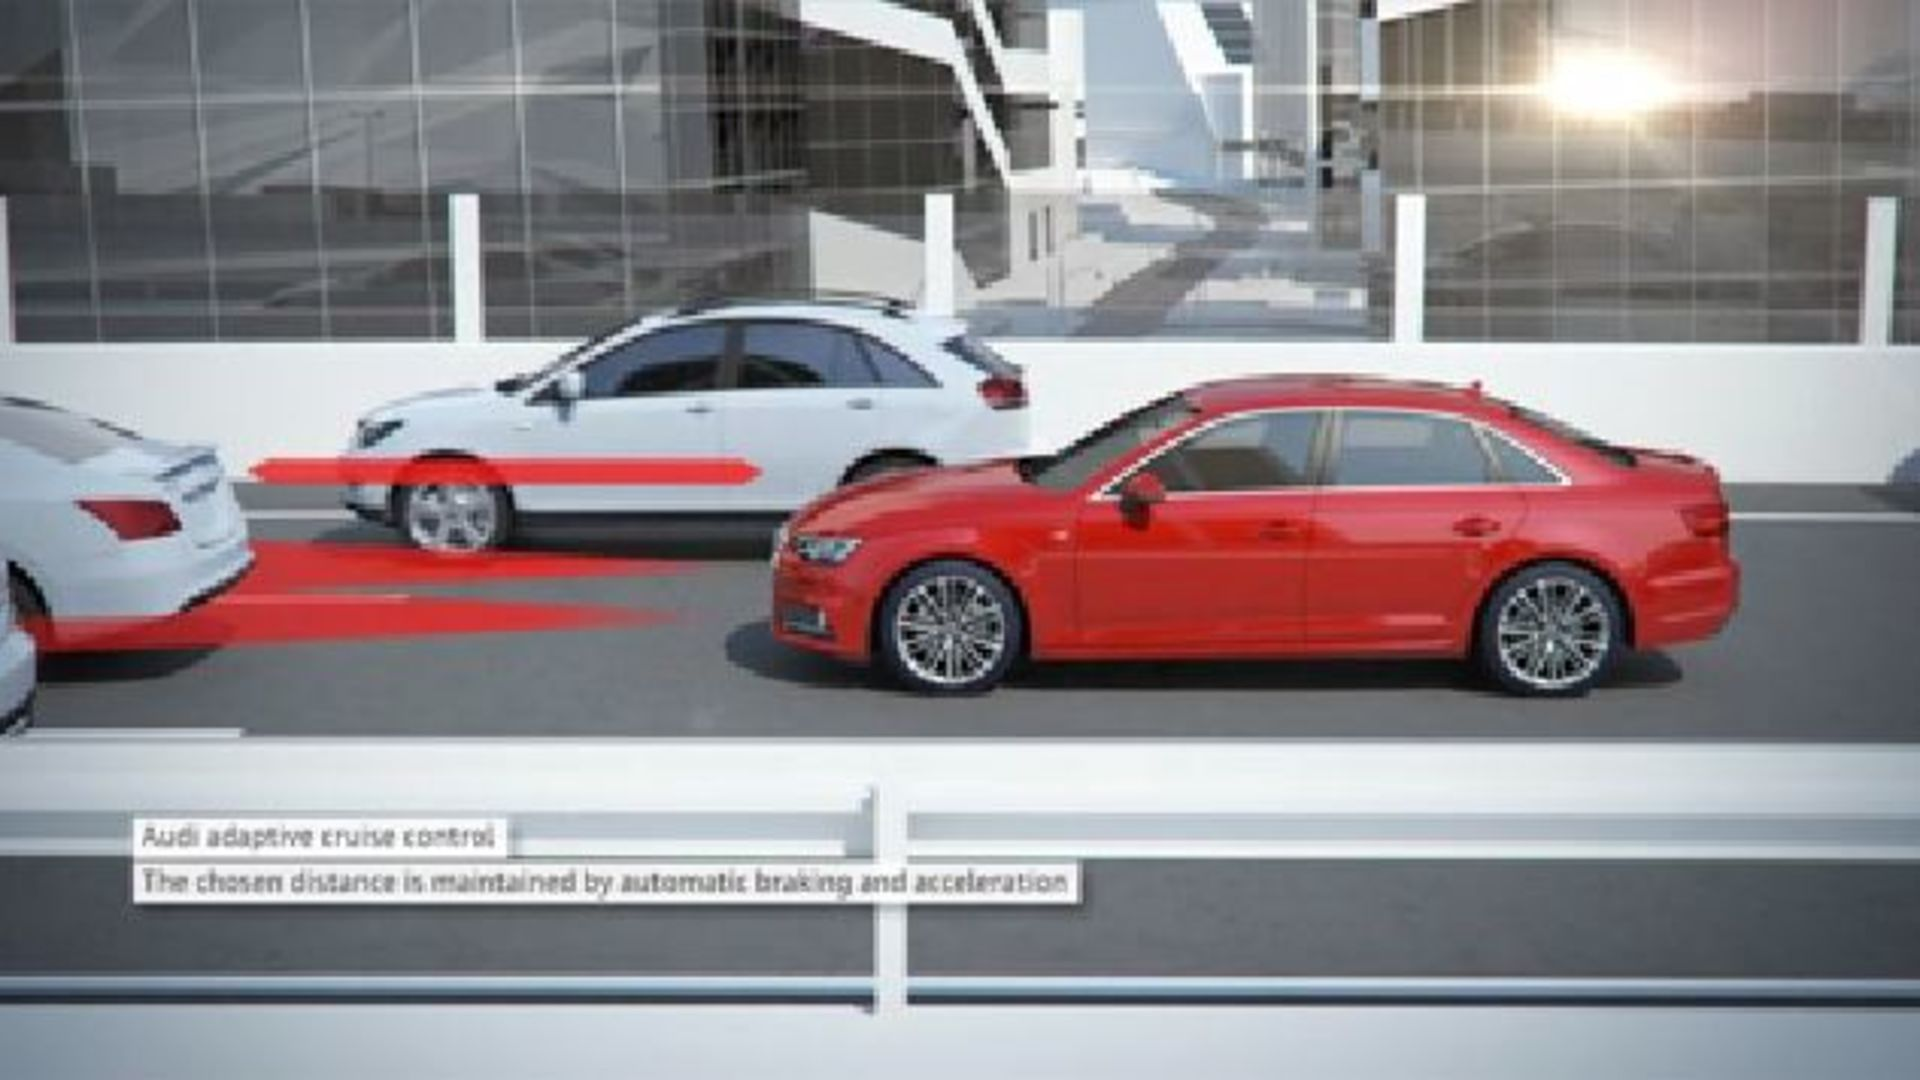 Audi A4 - Animation traffic jam assistant